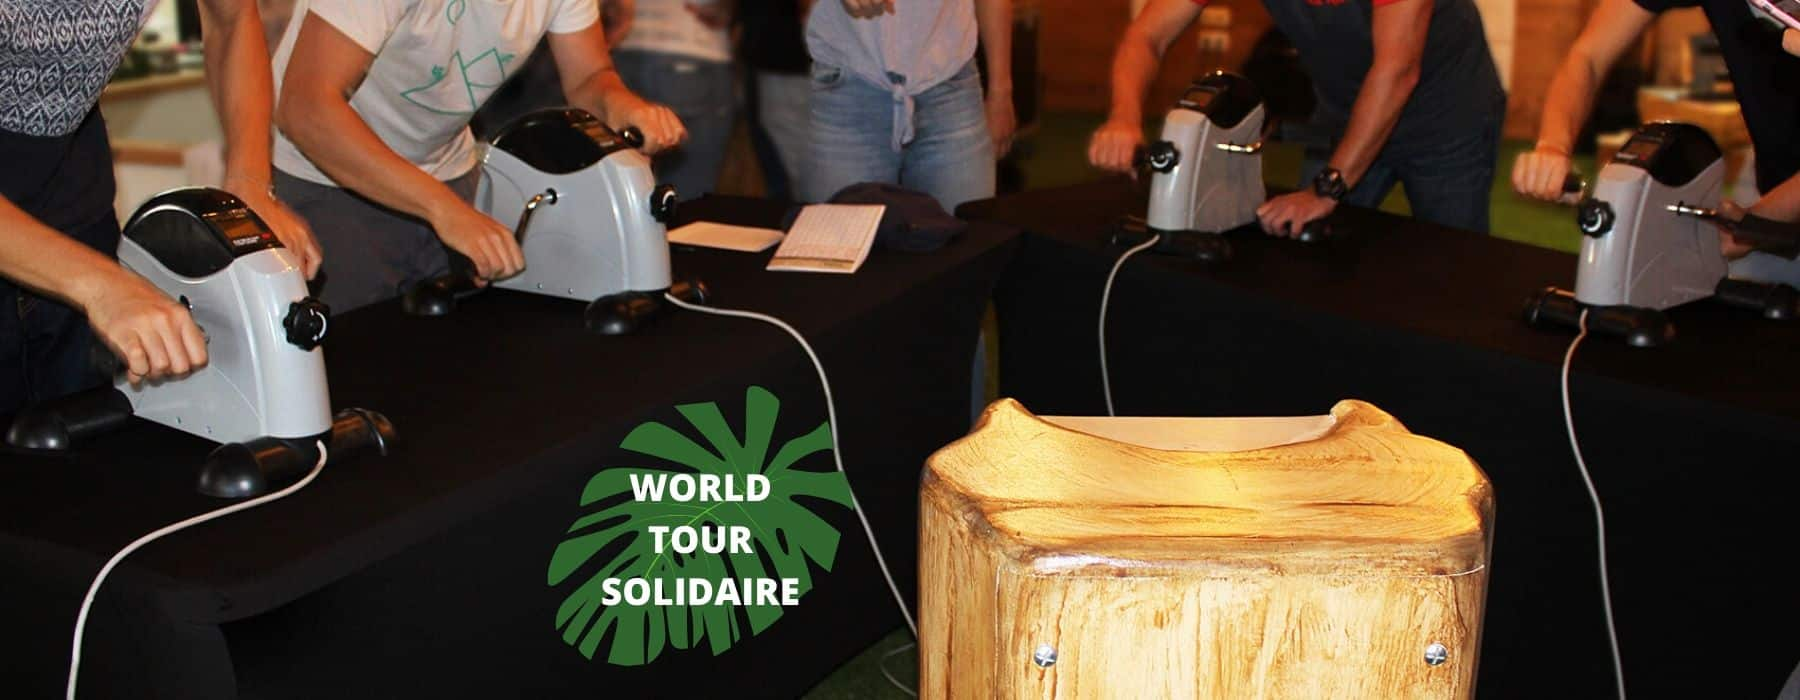 Fiche produit team building world tour solidaire (1)